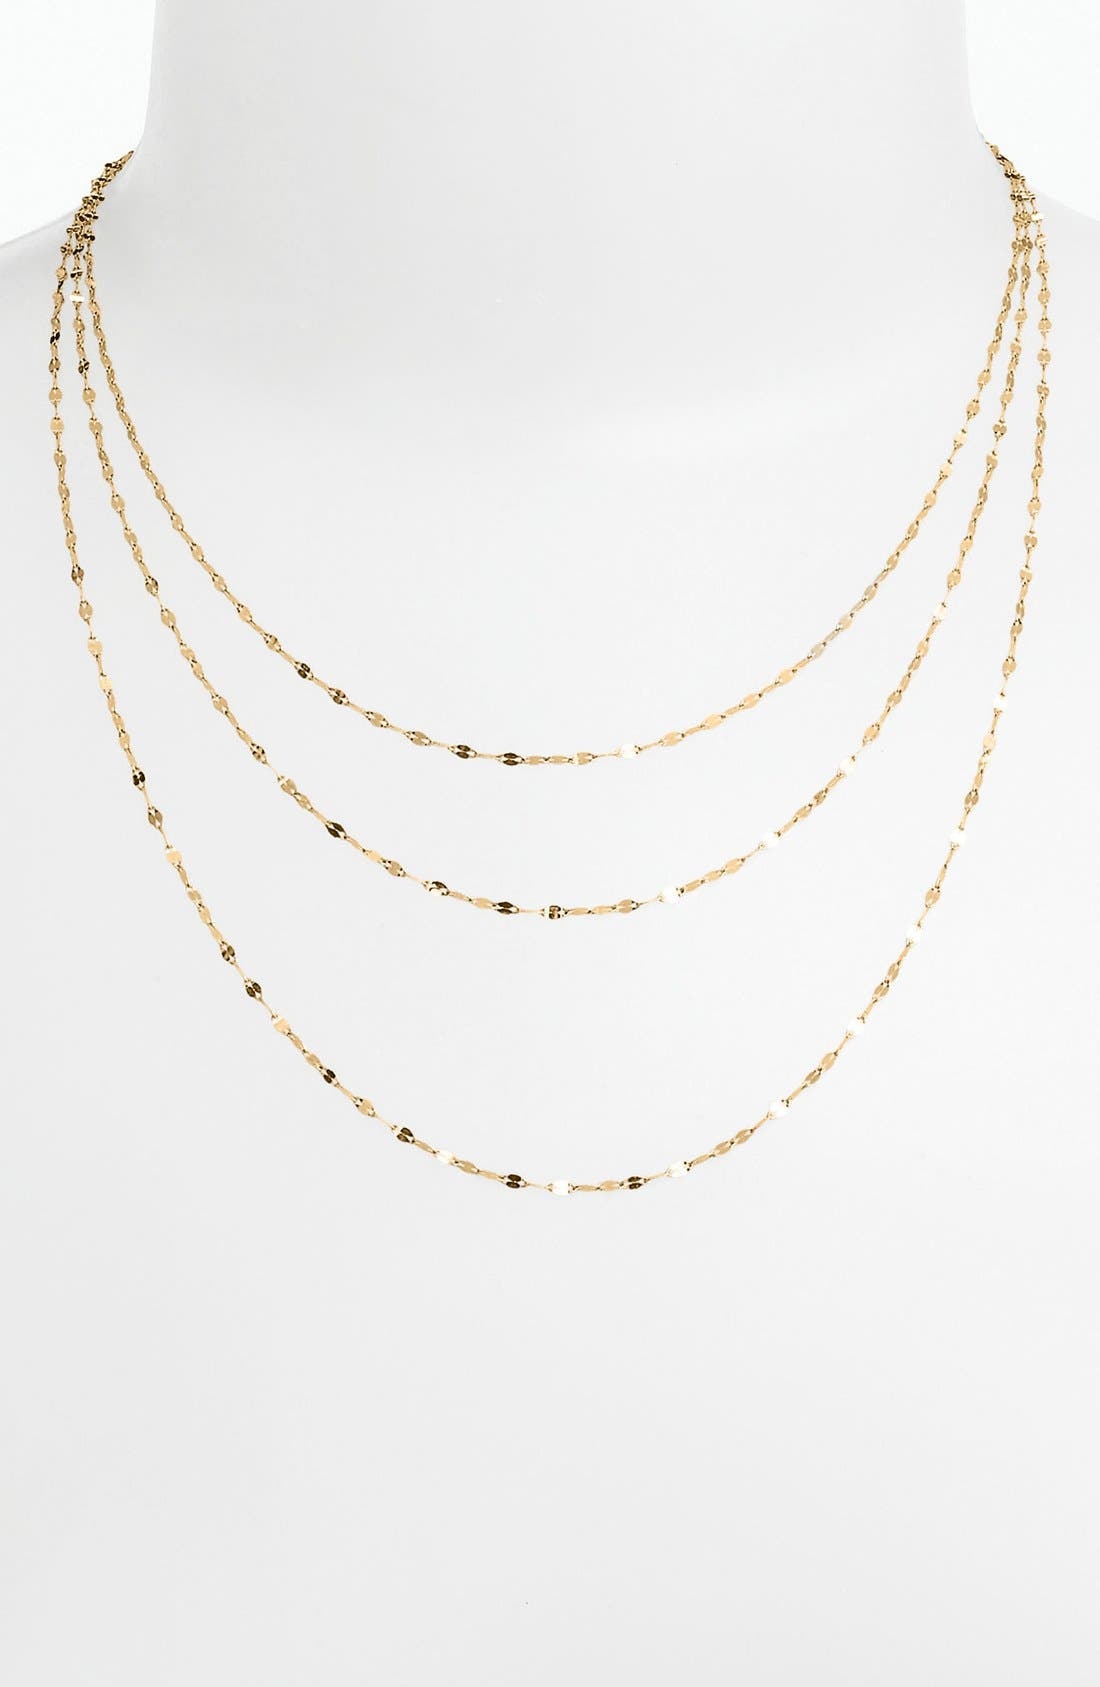 Alternate Image 1 Selected - Lana Jewelry 'Small Sienna' Necklace